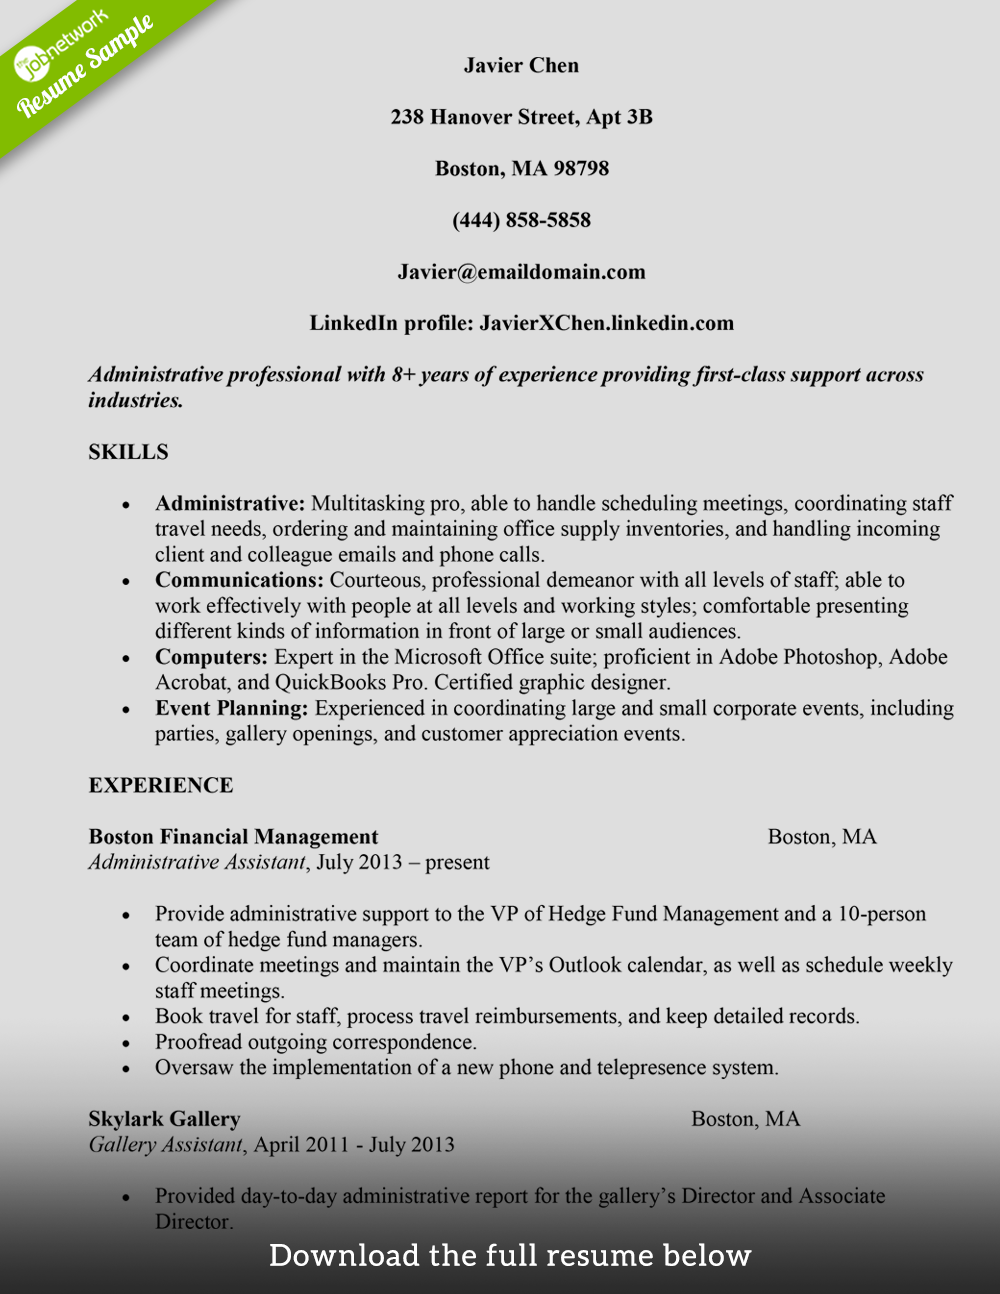 administrative assistant resume javier chen - Administrative Assistant Resume Sample